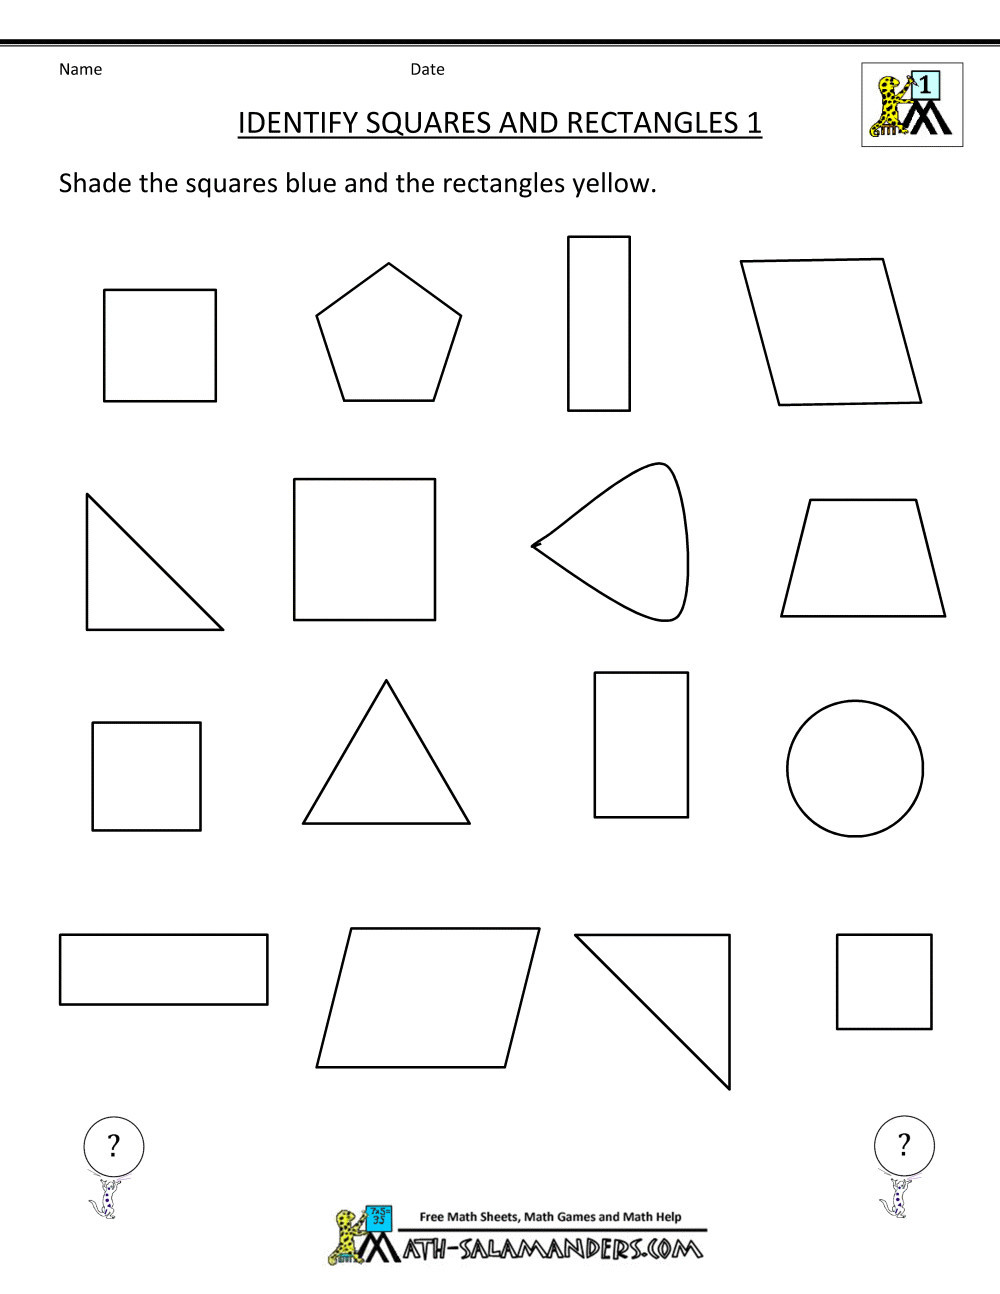 Polygon Worksheets 5th Grade 5 Free Math Worksheets Fifth Grade 5 Geometry Rectangular